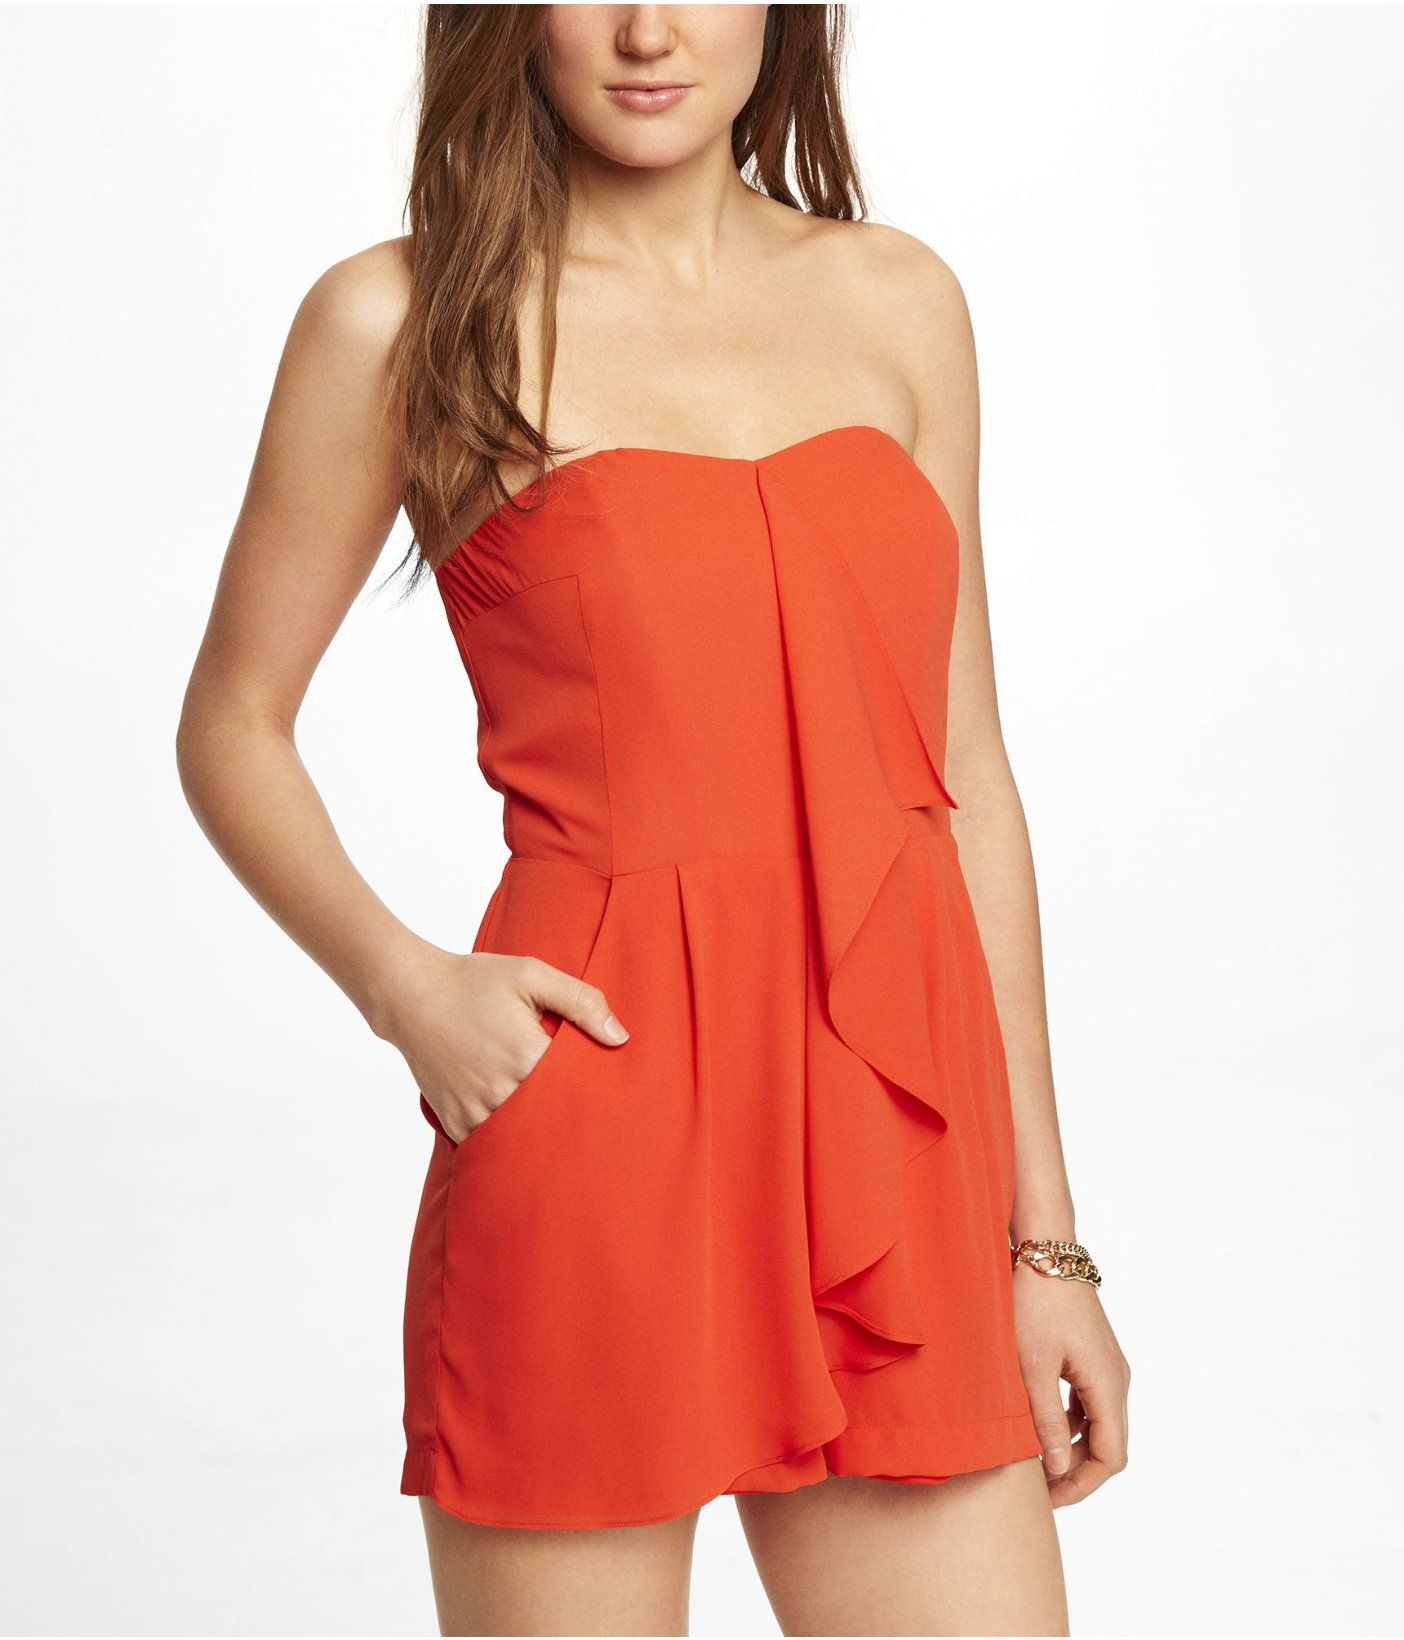 bc599878b5e6 Express strapless ruffle front romper (like the style but would prefer a  different color)